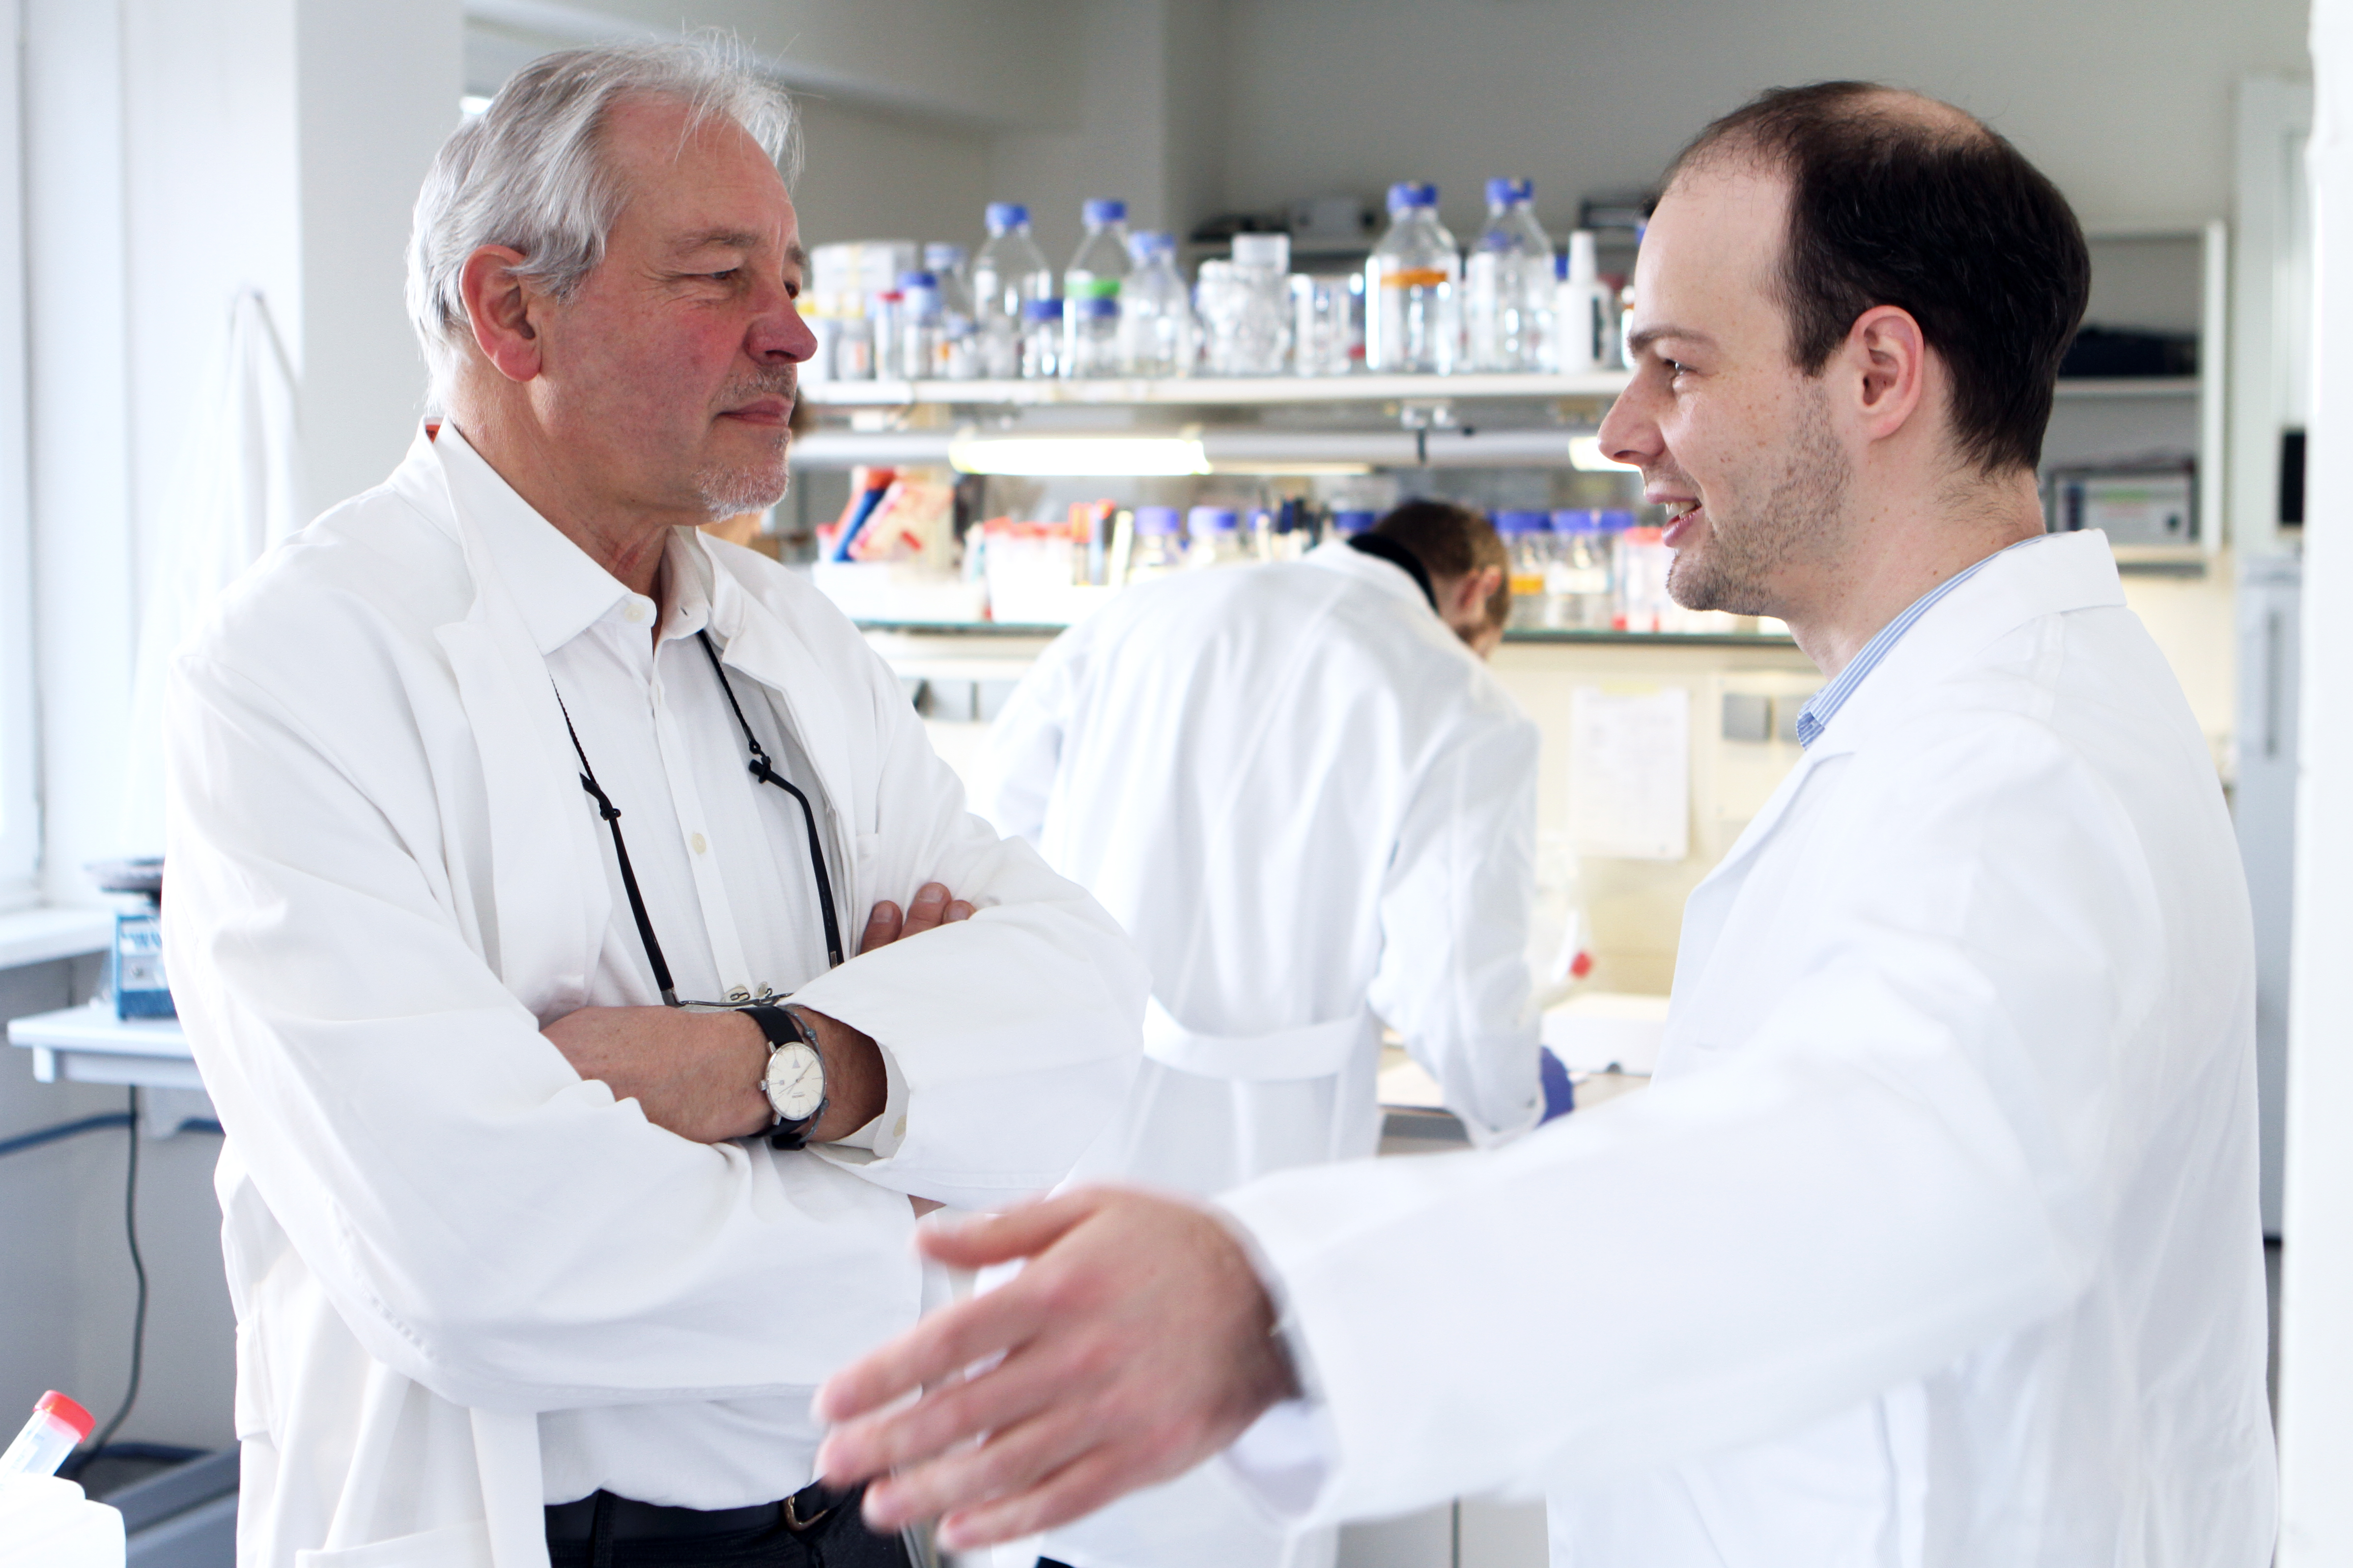 Two scientists talk to each other in a lab